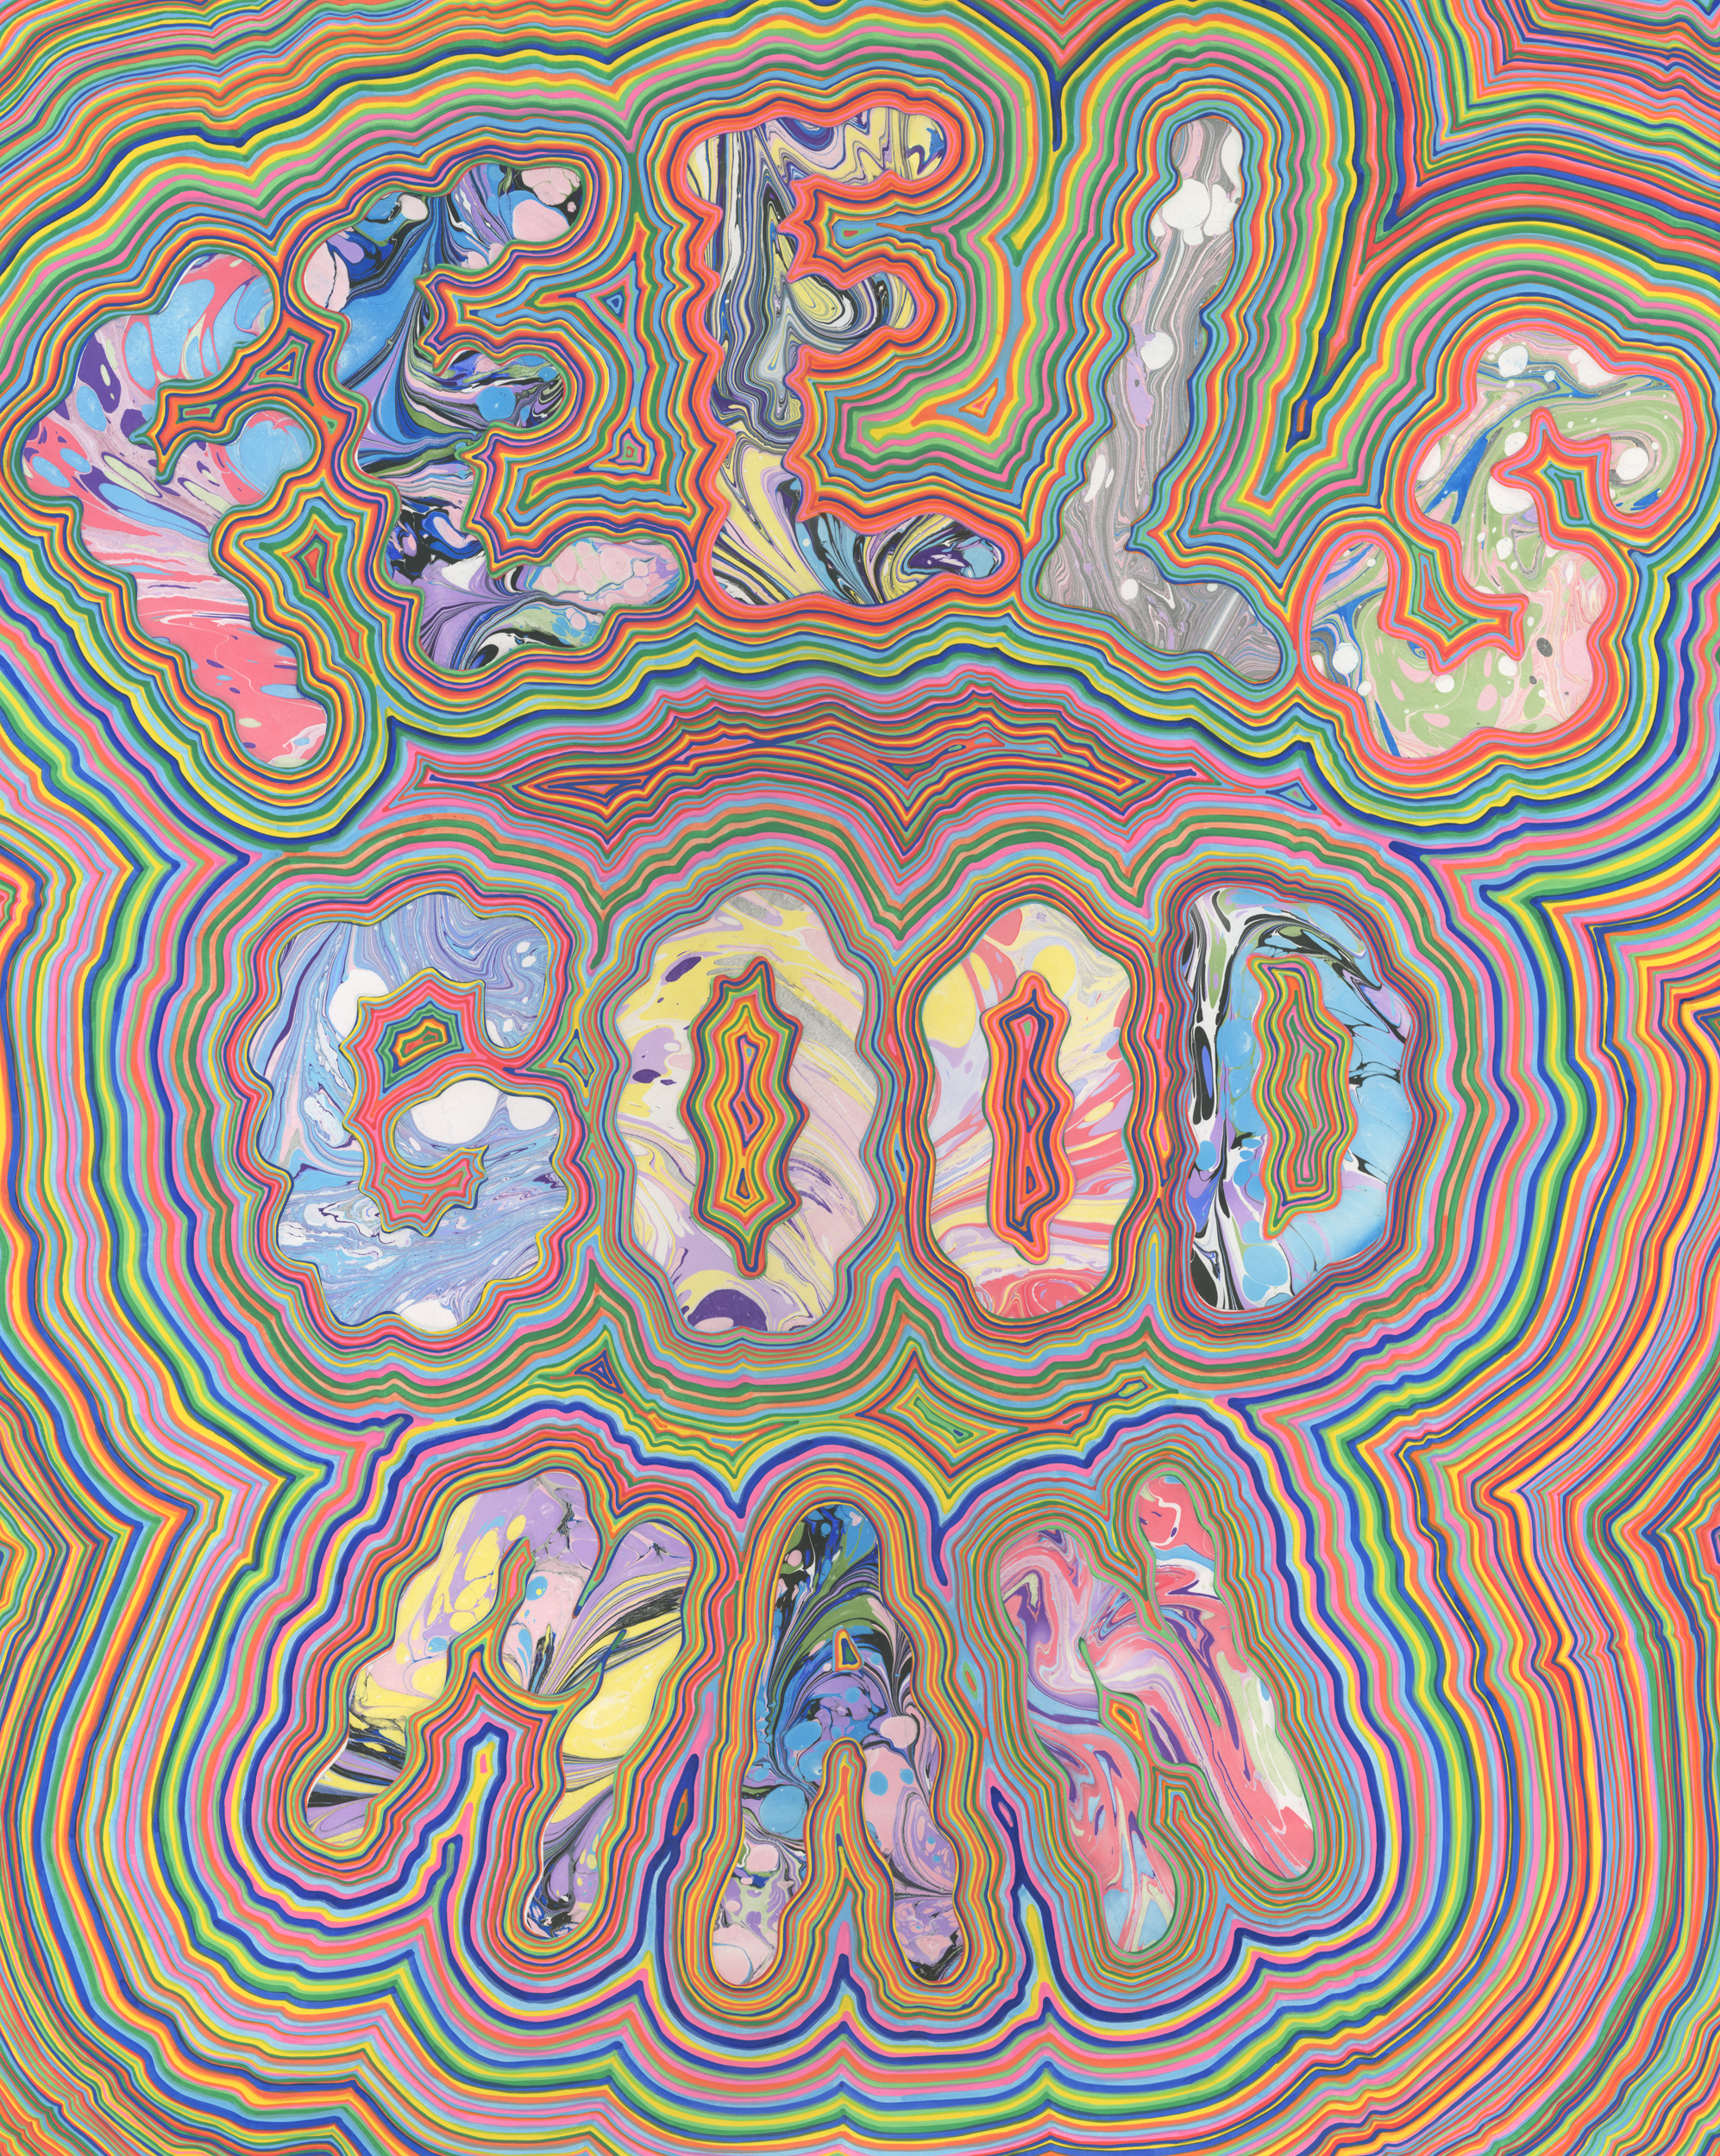 Feels Good Man - Feels Bad Man (diptych) (2017), marbled paper and acrylic paint pen on paper, 19 x 24 inches